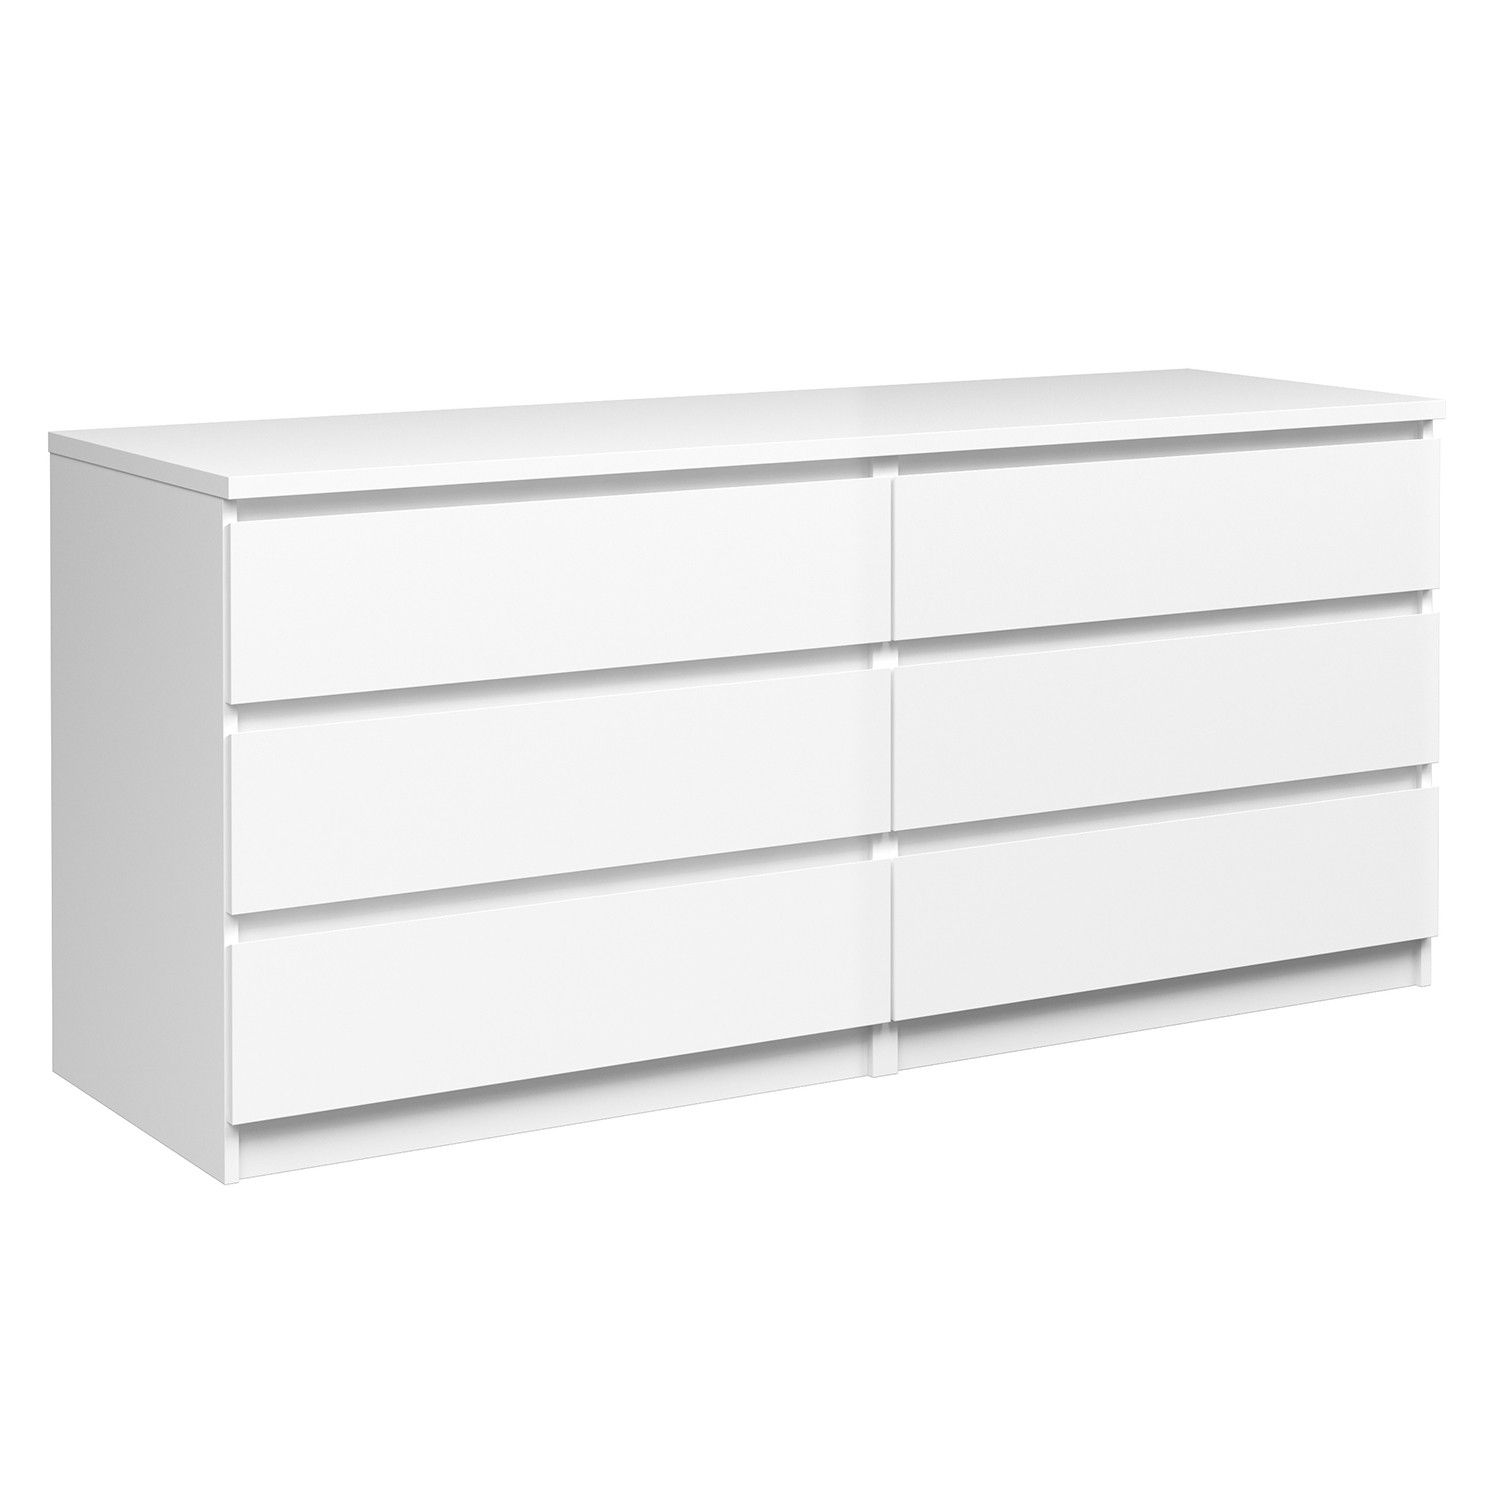 Jysk Brondby 6 Drawer Dresser White 279 99 Dresser Drawers 6 Drawer Dresser Dresser